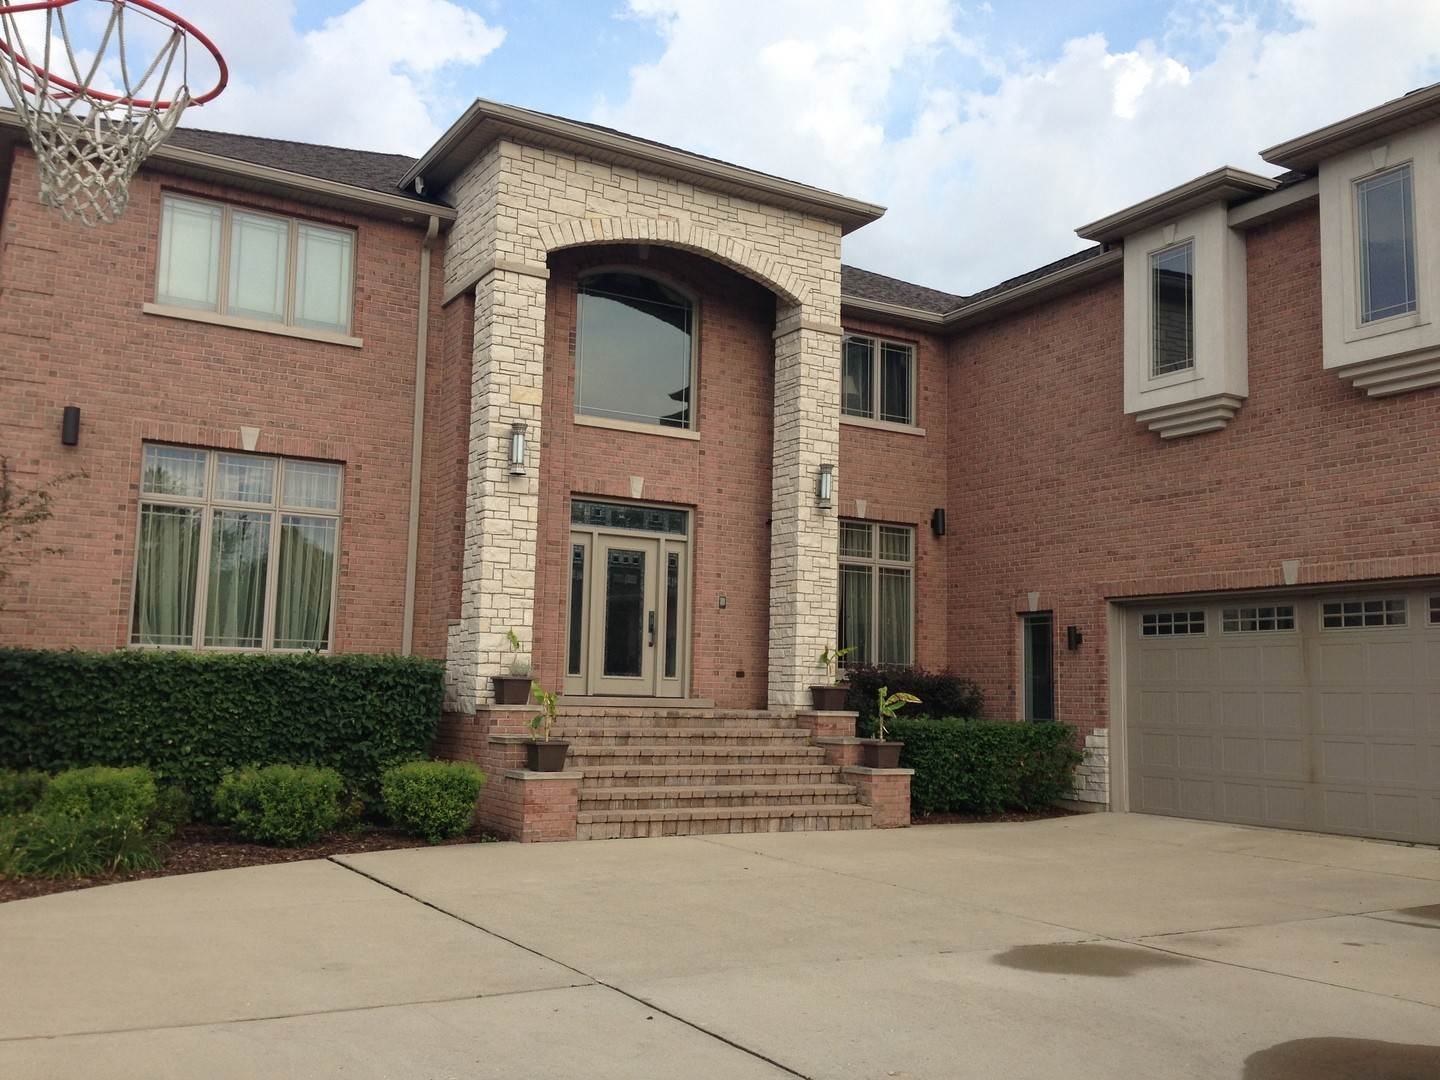 Single Family Homes for Sale at 433 Pleasant Drive Schaumburg, Illinois 60193 United States